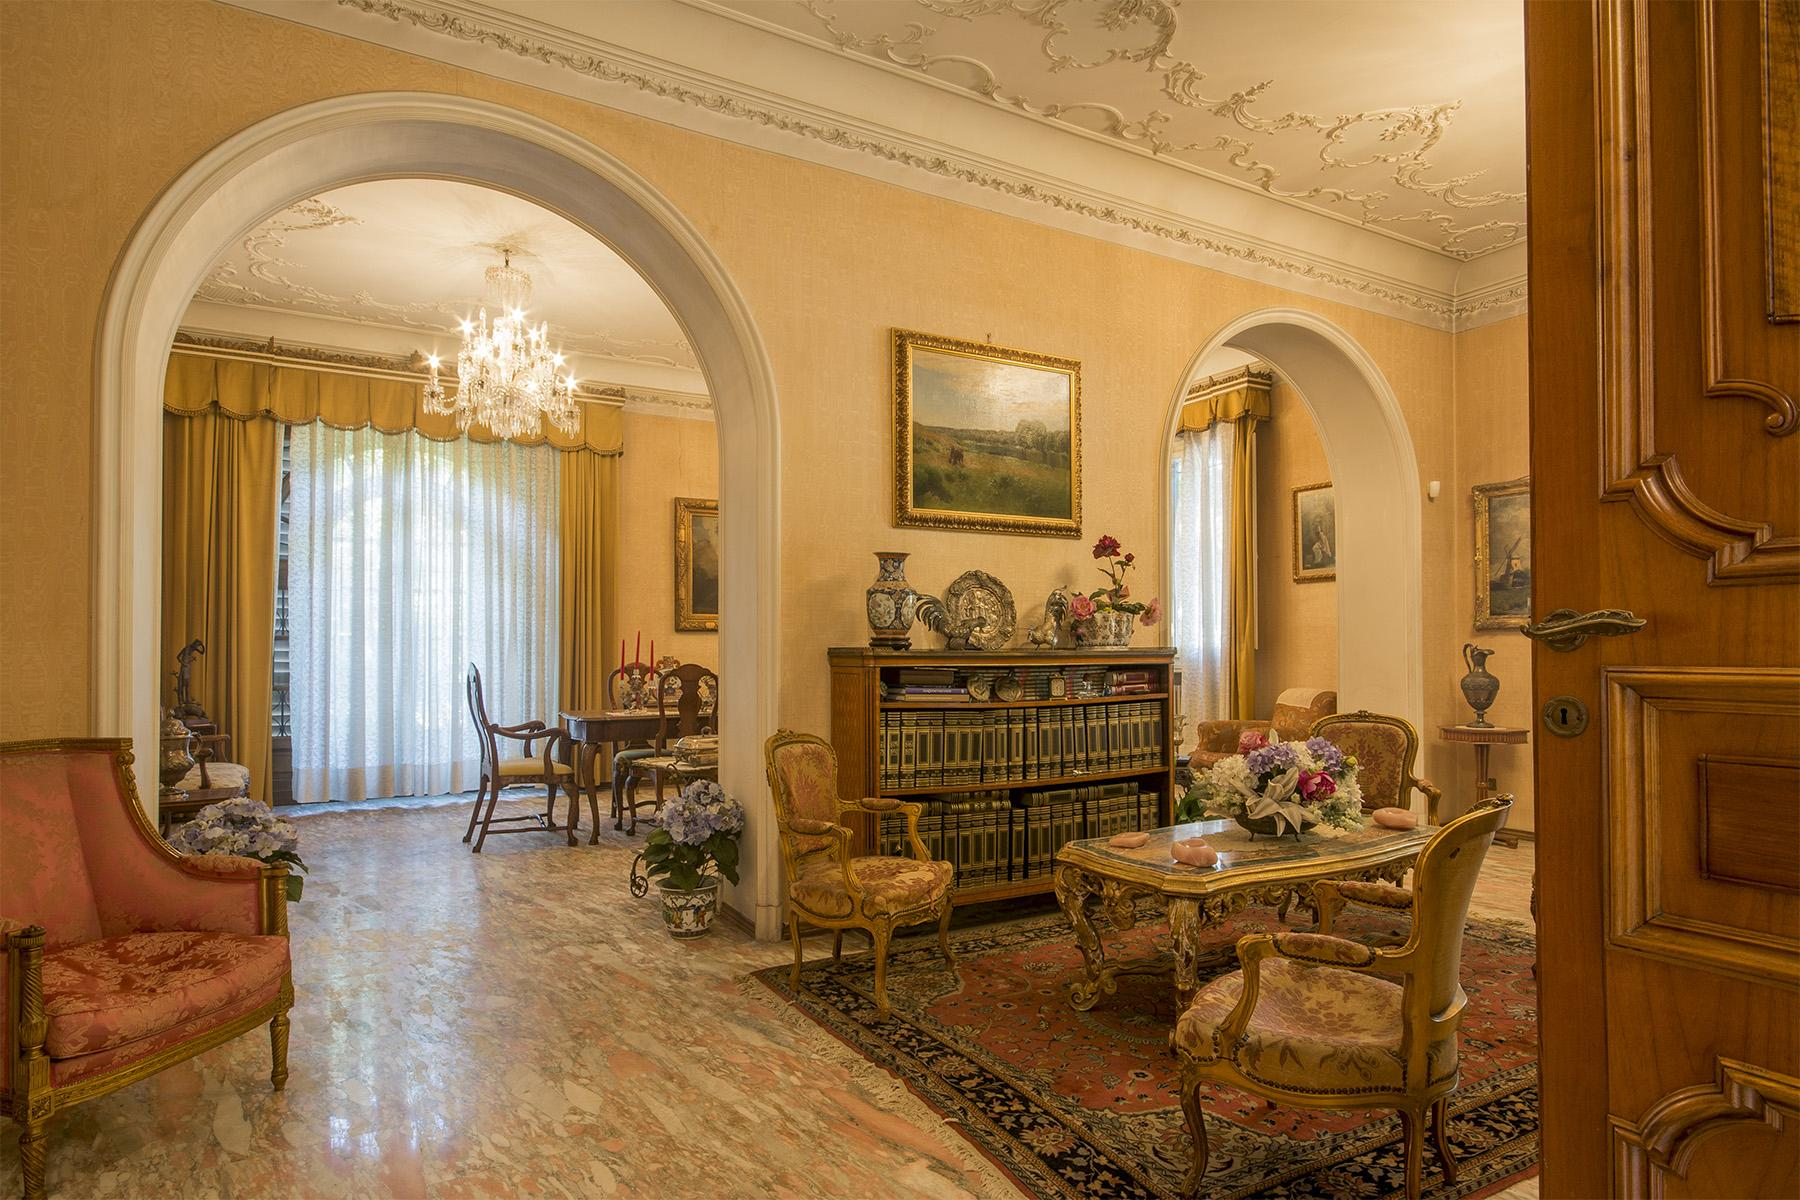 Elegant 20th century villa in Montecatini - 2